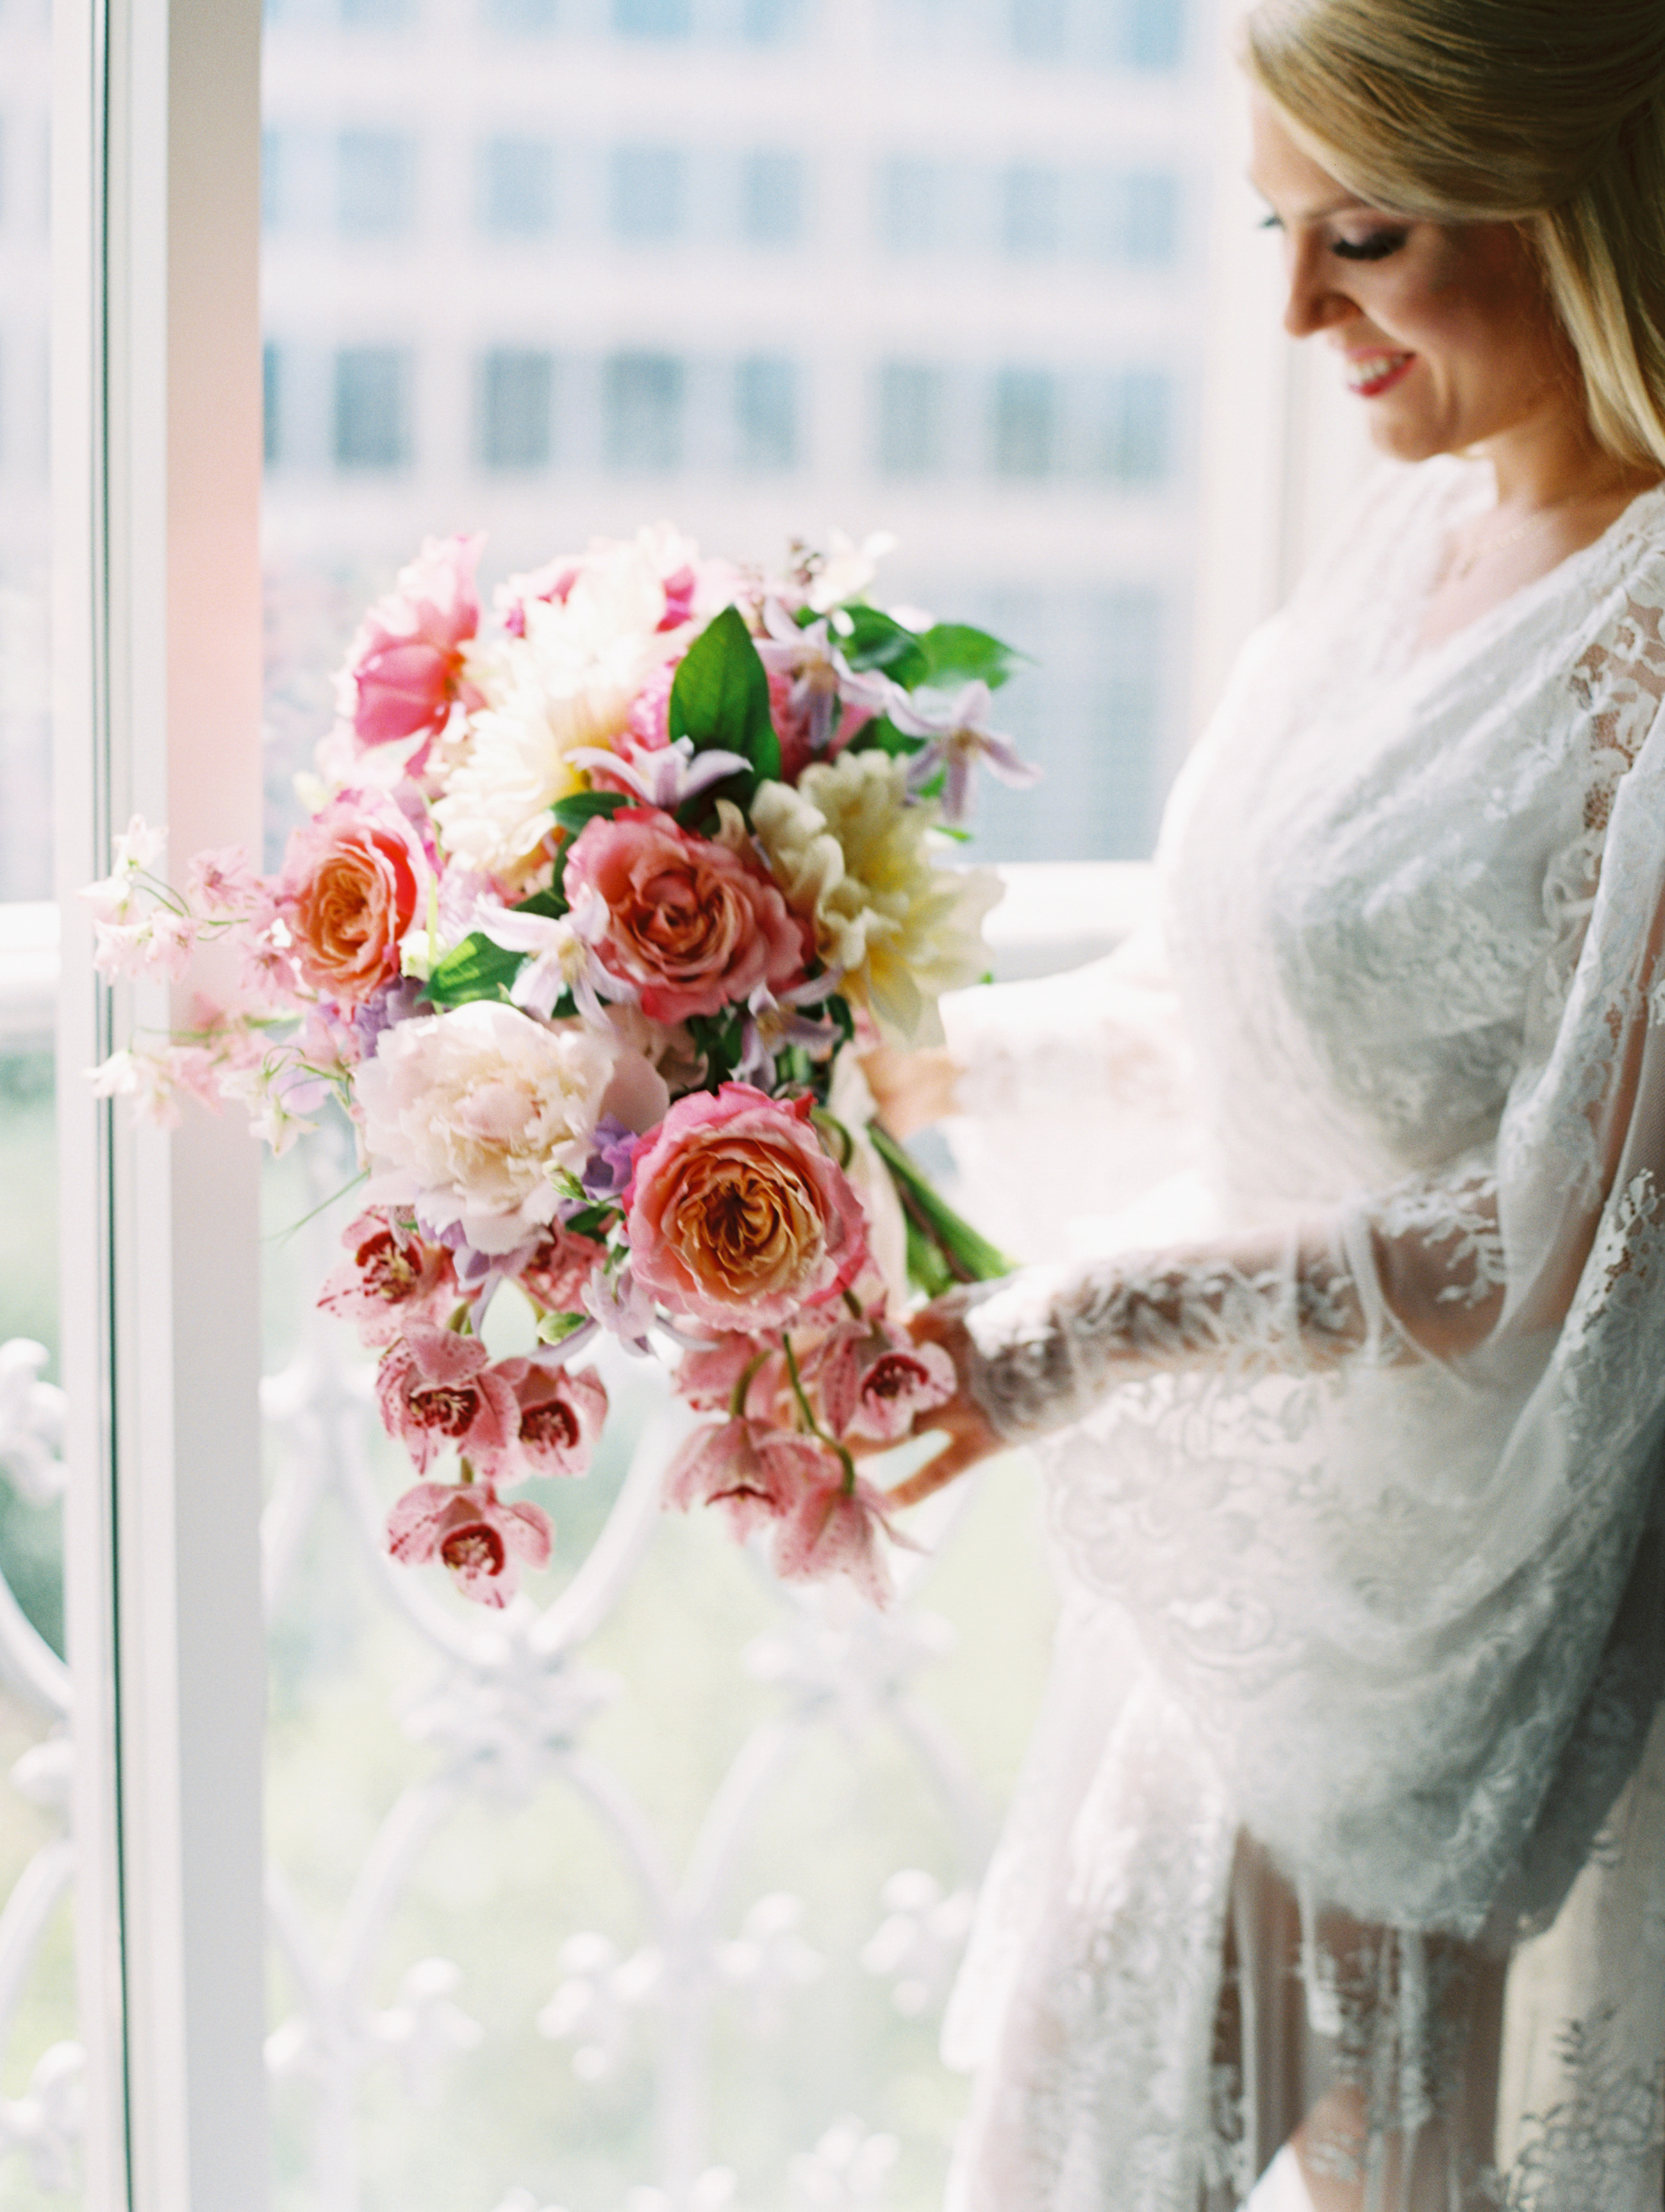 Blakeley-and-bouquet-Ivory-and-Vine.JPG